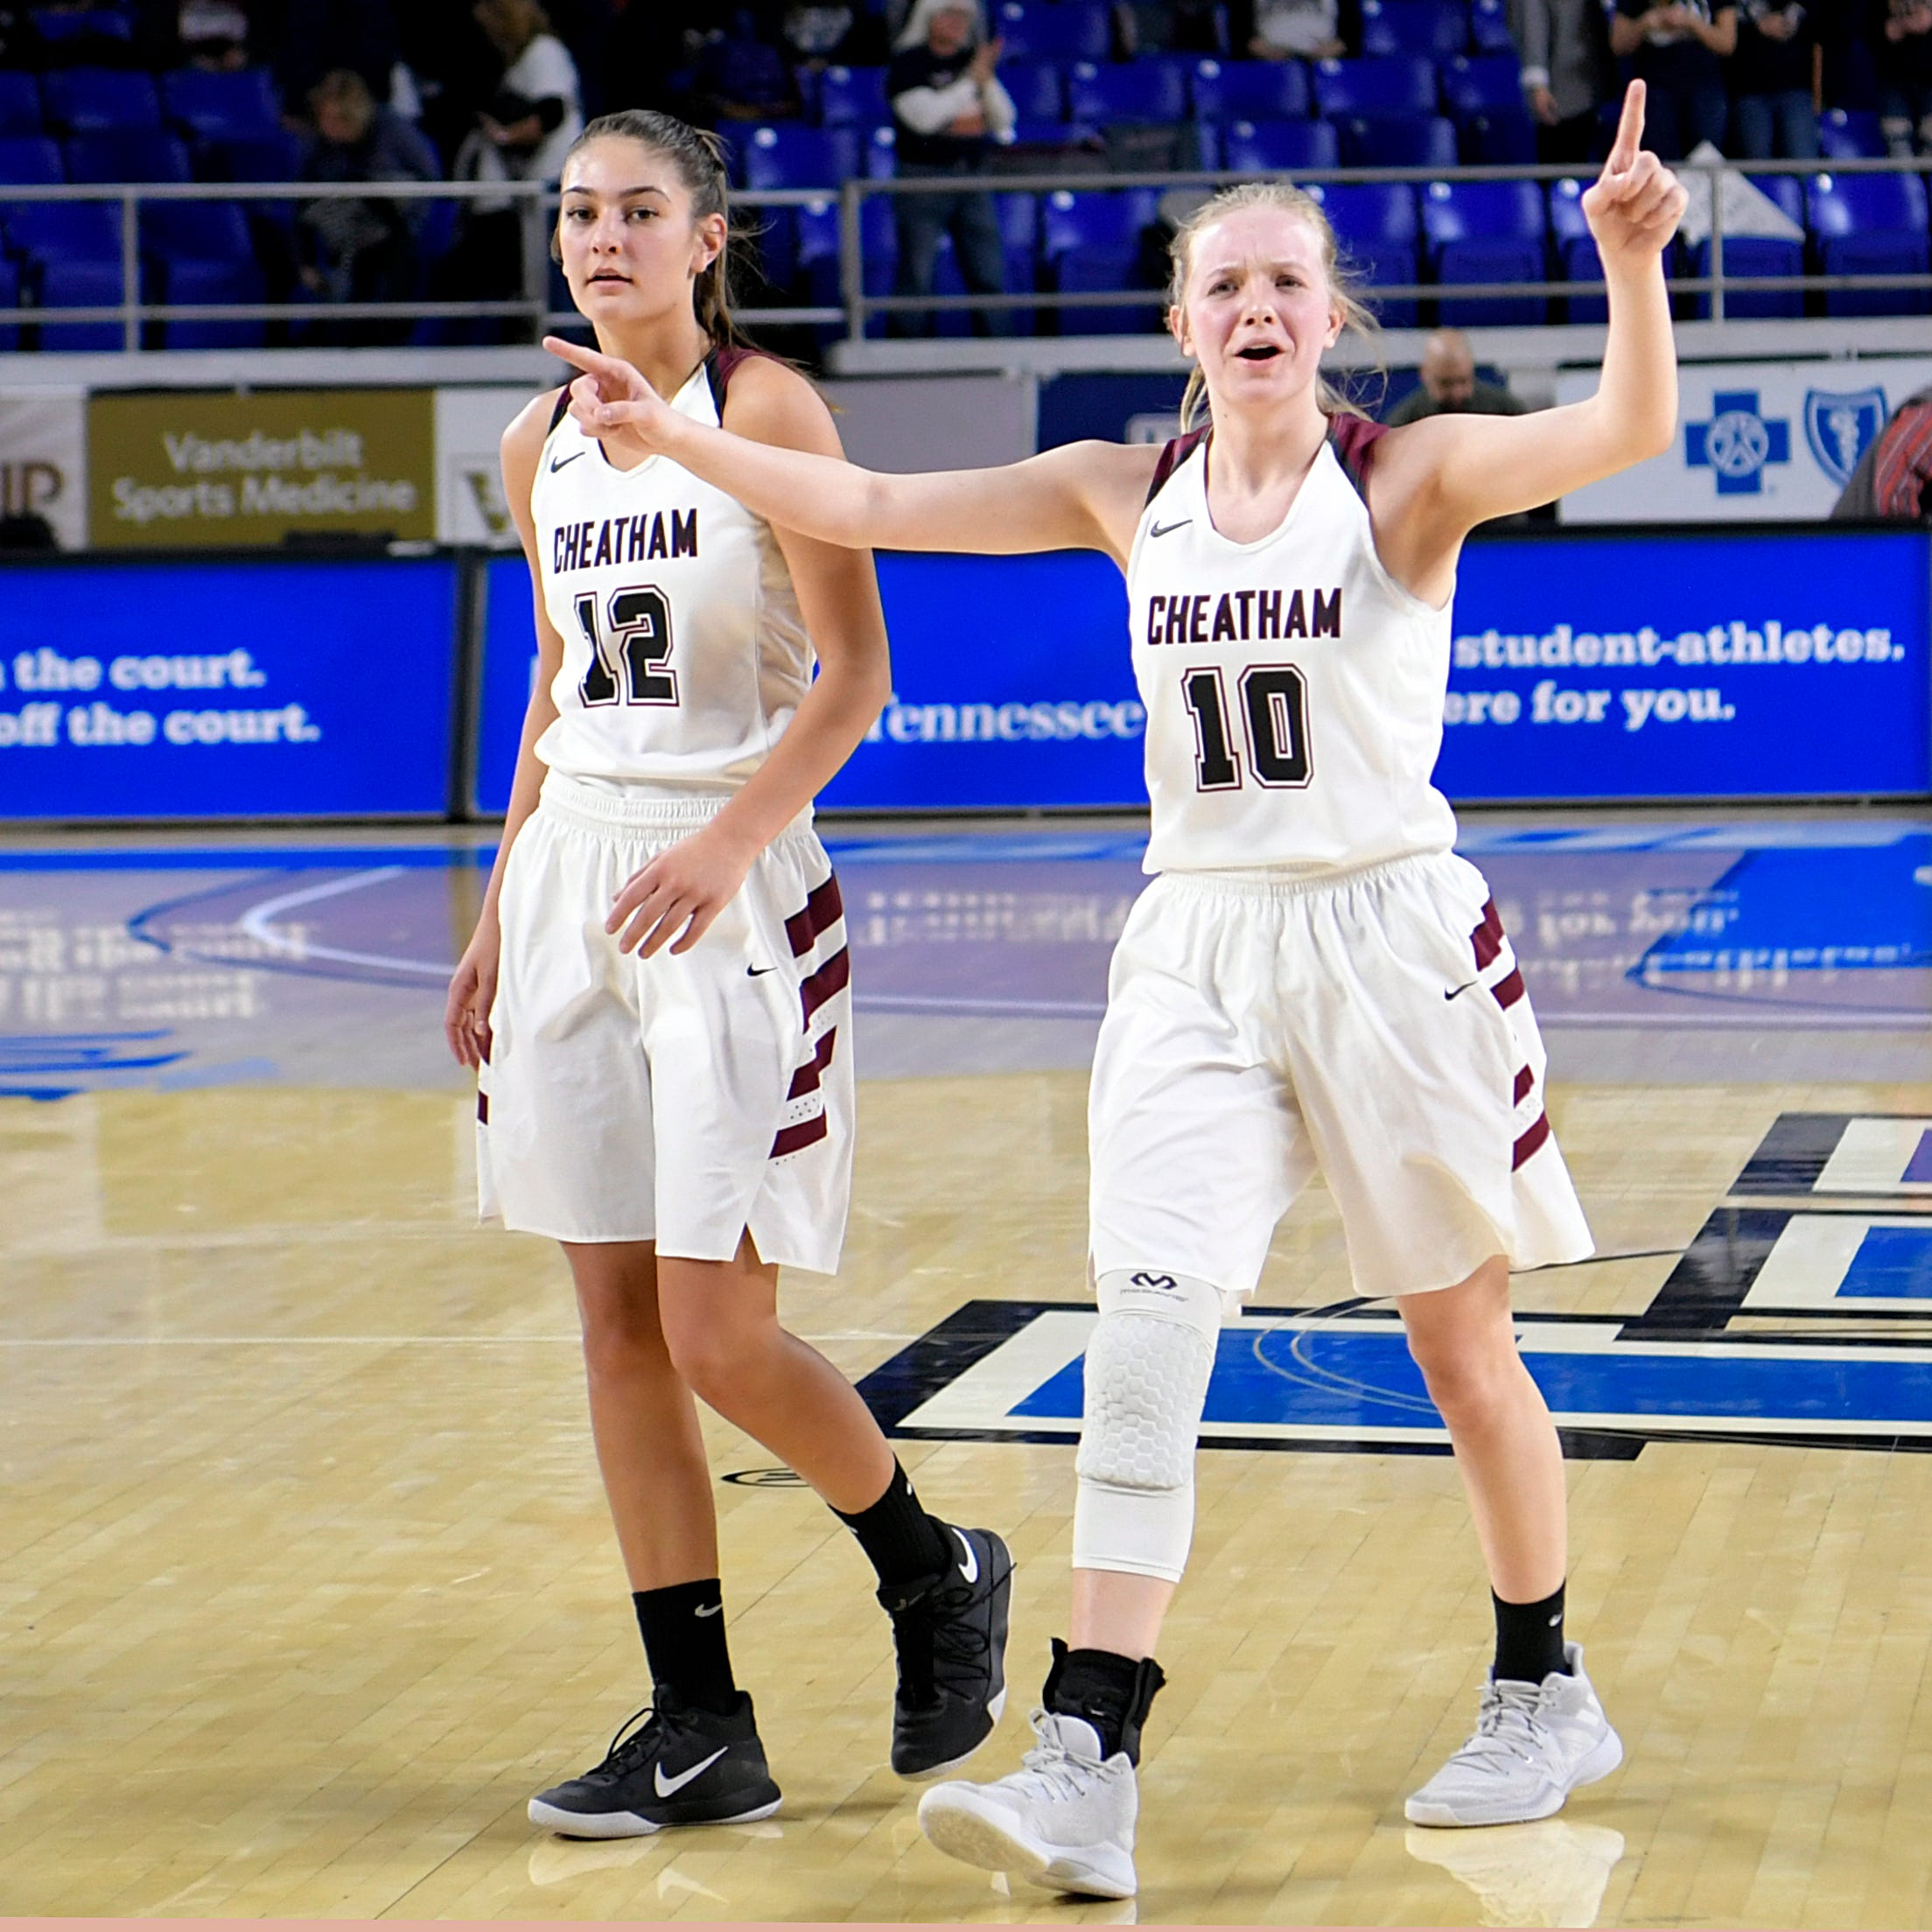 Pat Summitt's great nieces help Cheatham County girls reach state semifinals